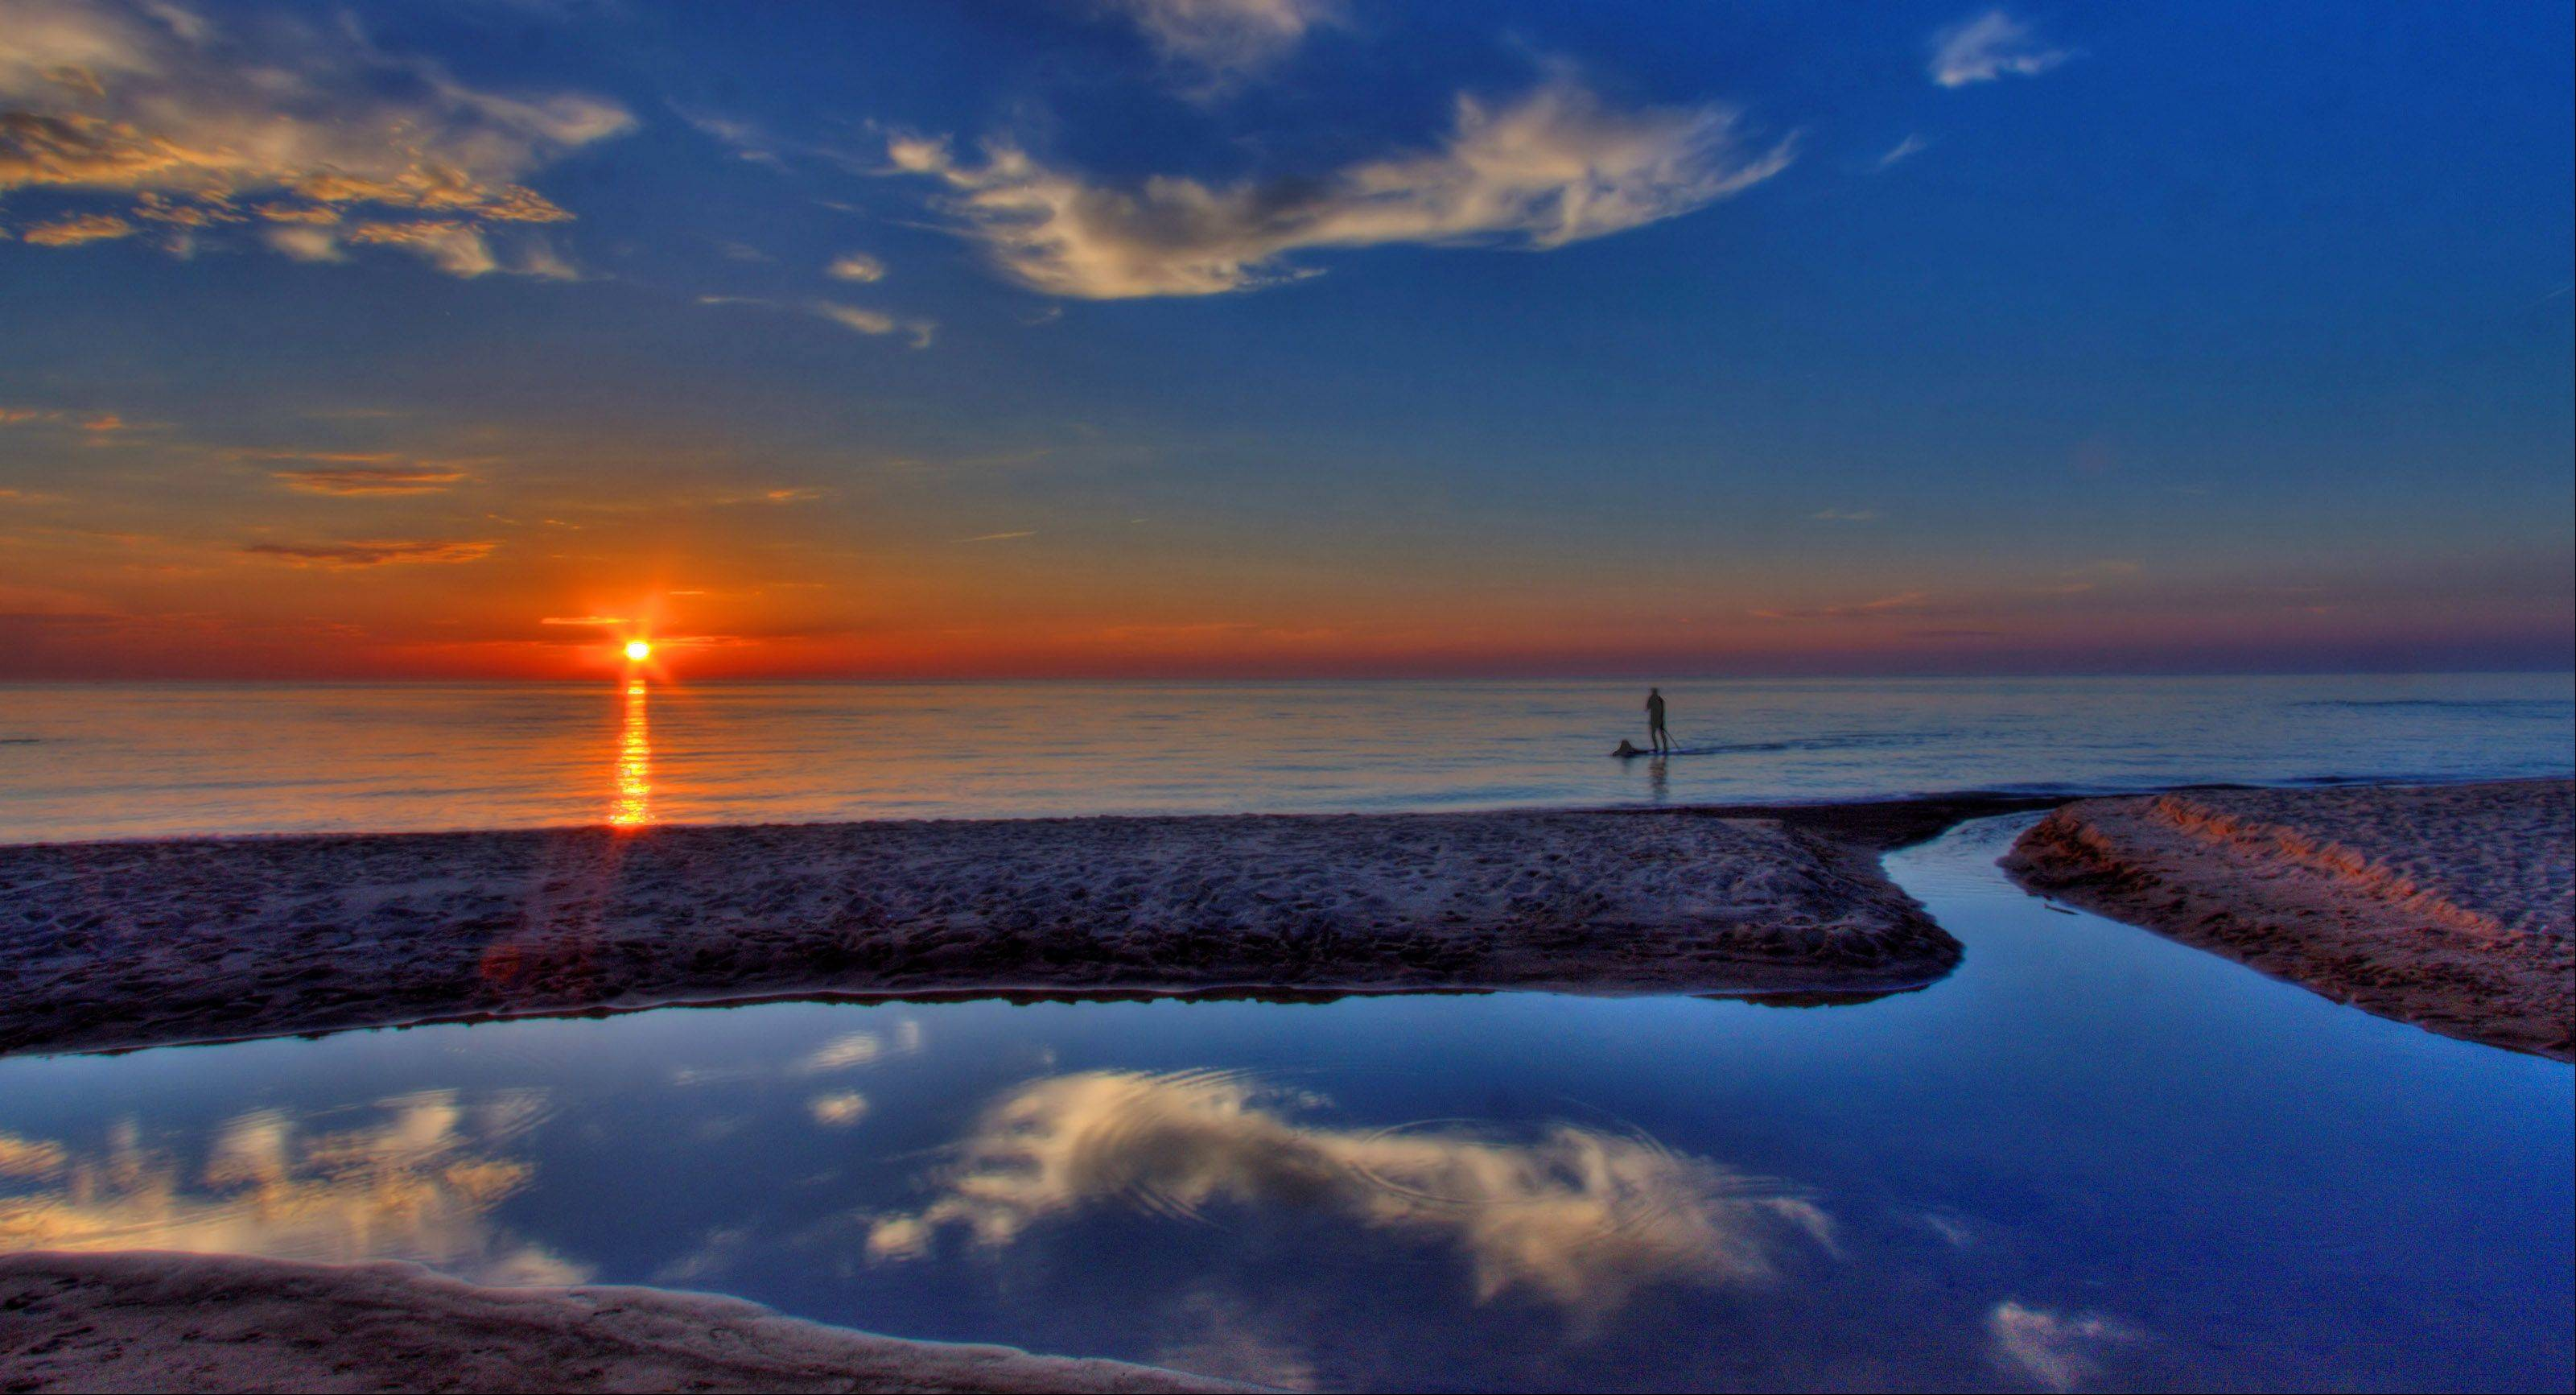 Leo Modica of Wheaton took this photo of a paddler on the edge of Lake Michigan during a sunset. �It was an interesting photo where the subject was the paddler but also the sun, and I like those pictures because they show humans in nature,� he said.